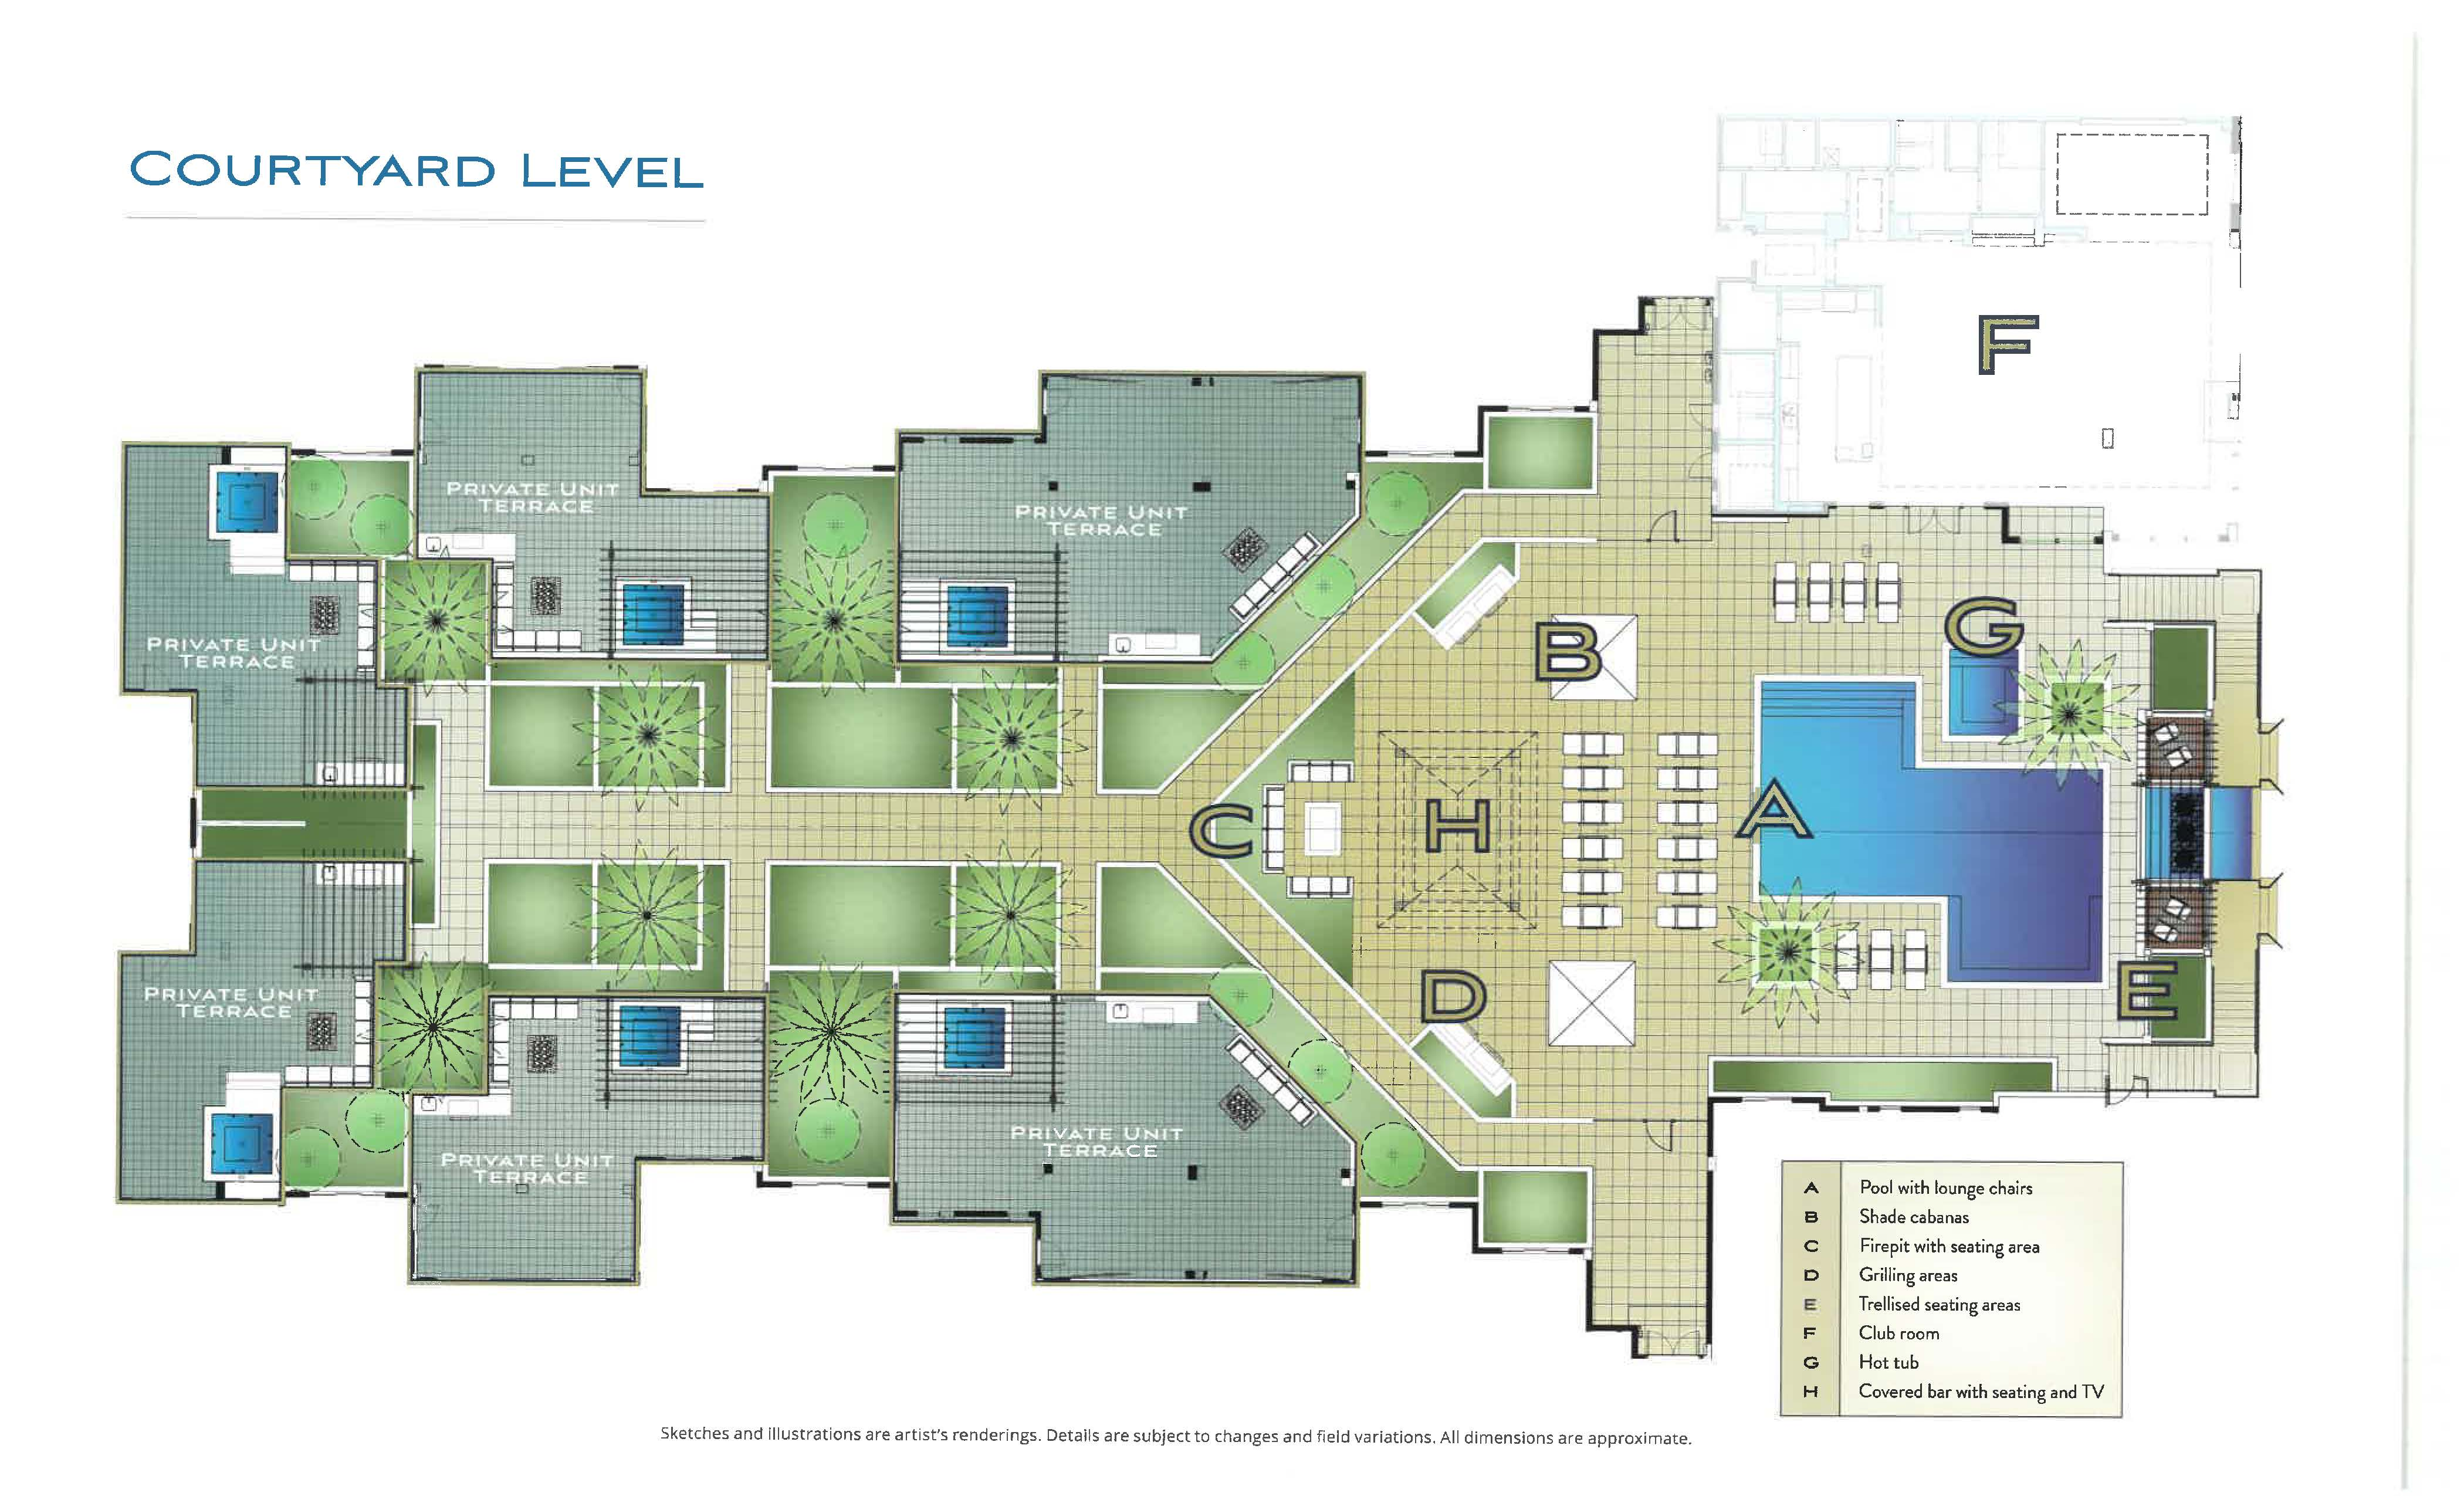 Naples Square Site Plan